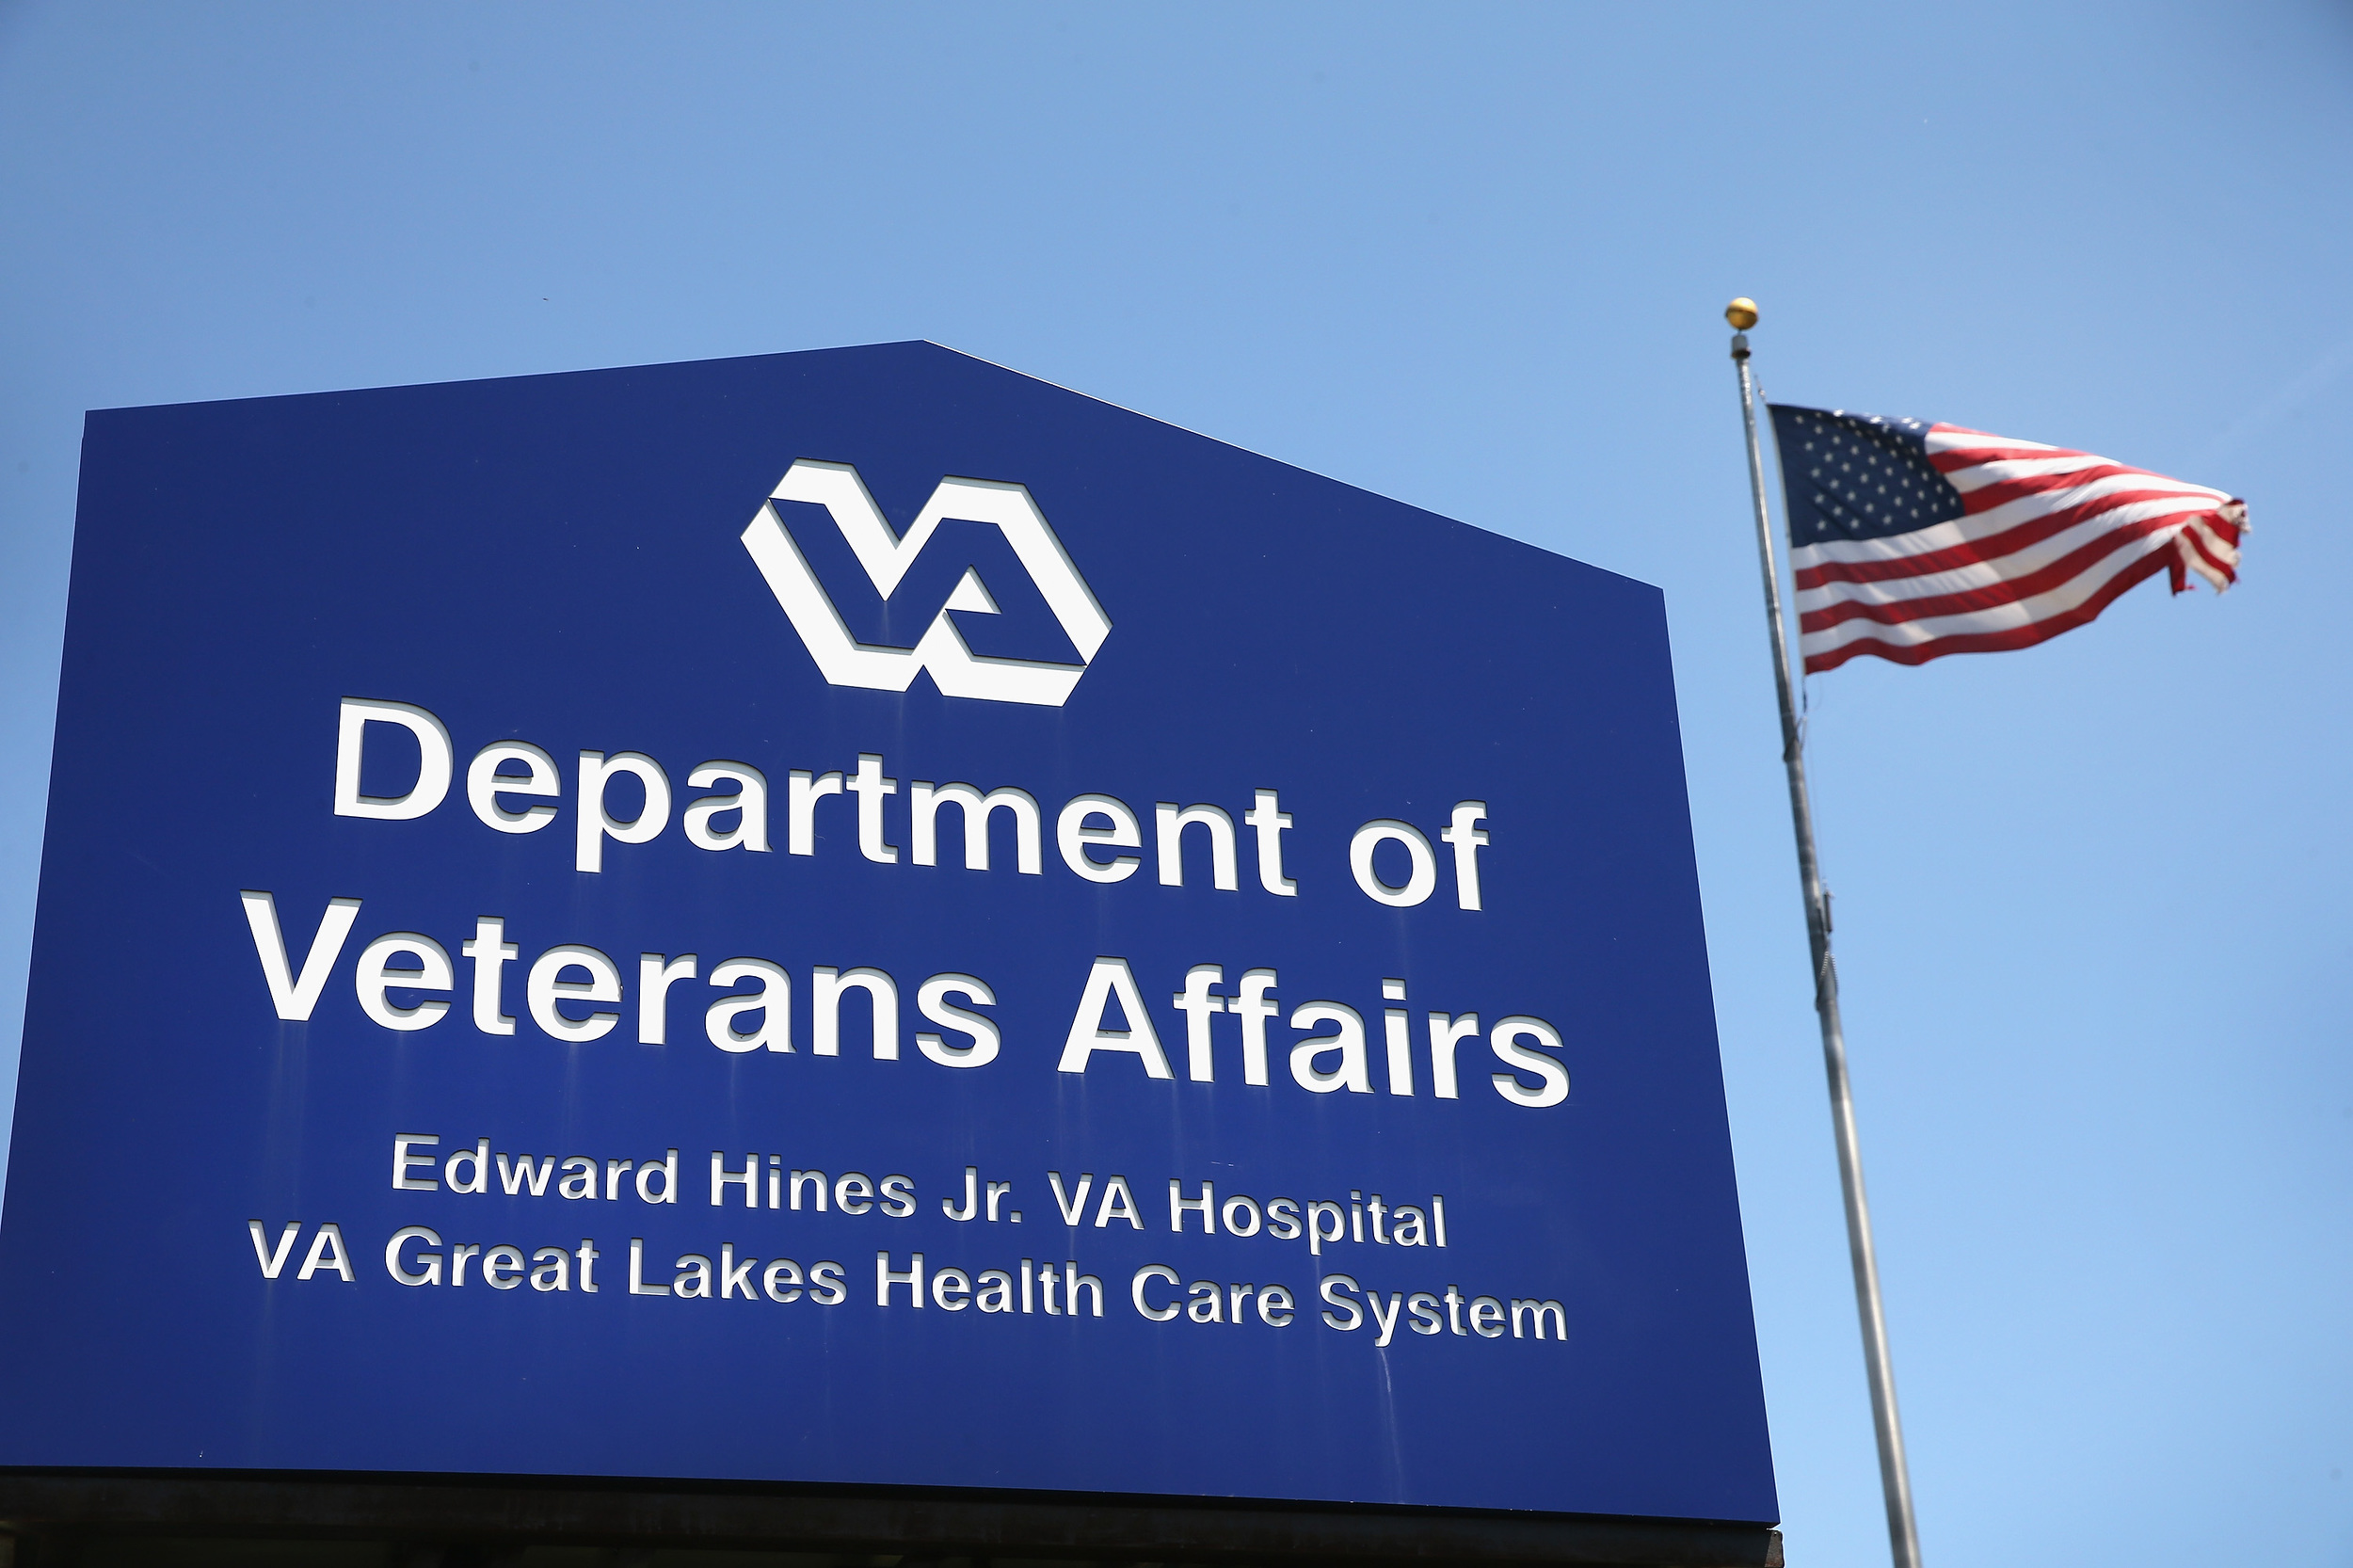 Research Paper on Veterans' Rights in the United States